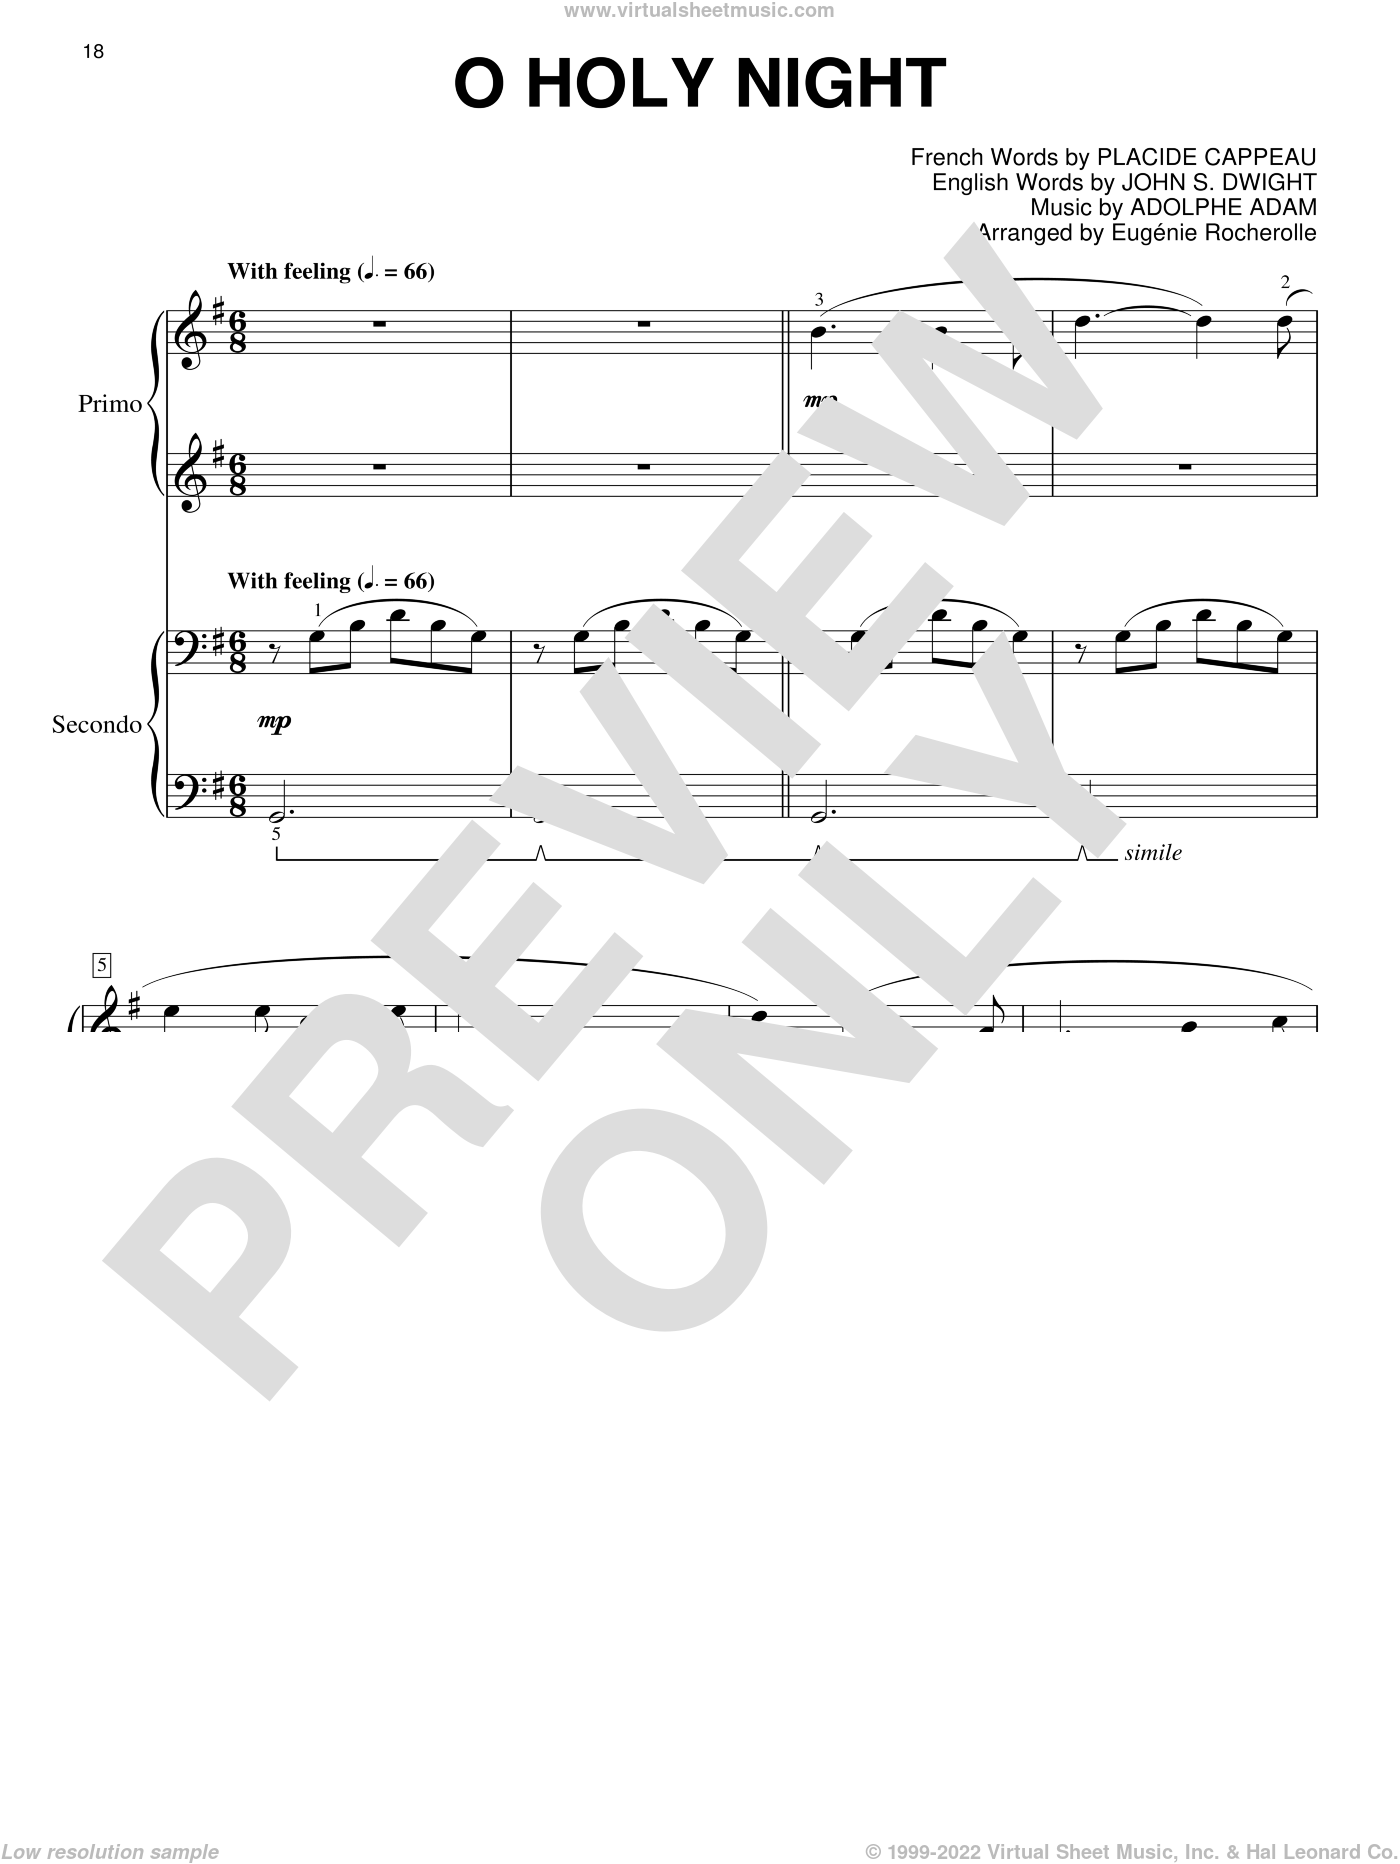 O Holy Night sheet music for piano four hands (duets) by Placide Cappeau